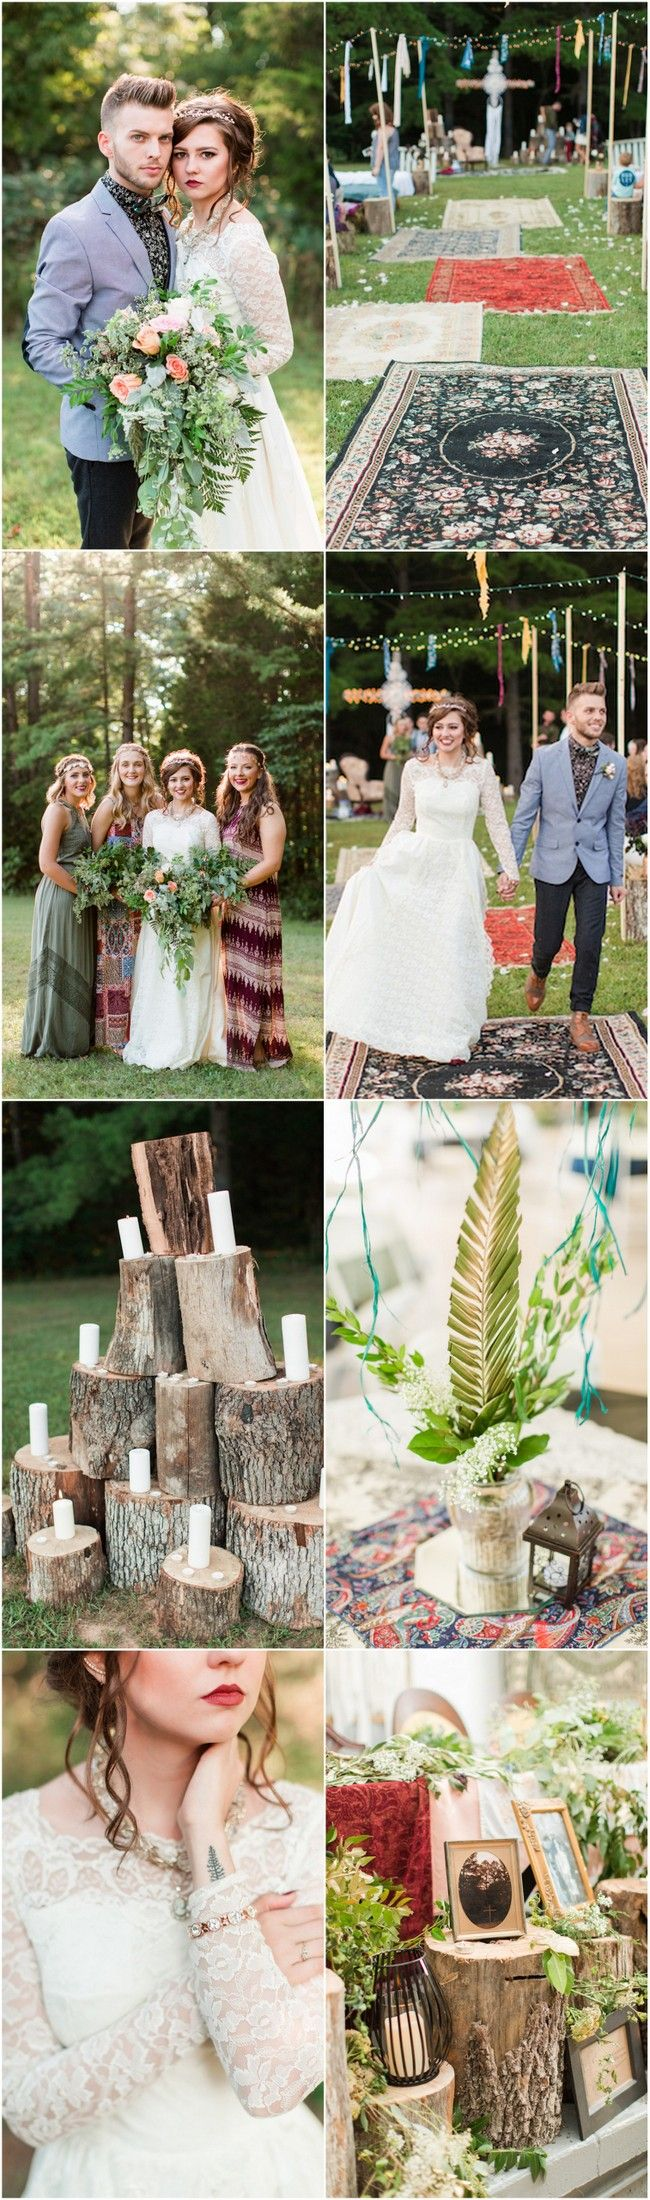 Their boho sunset campground wedding had doilies, dreamcatchers, mismatched rugs, tapestries, strings of twinkle lights overhead, candles & a Breaking Dawn inspired, vintage 1950s wedding dress! Pics: Lyndsey Paige Photography http://www.confettidaydreams.com/backyard-bohemian-campground-wedding/